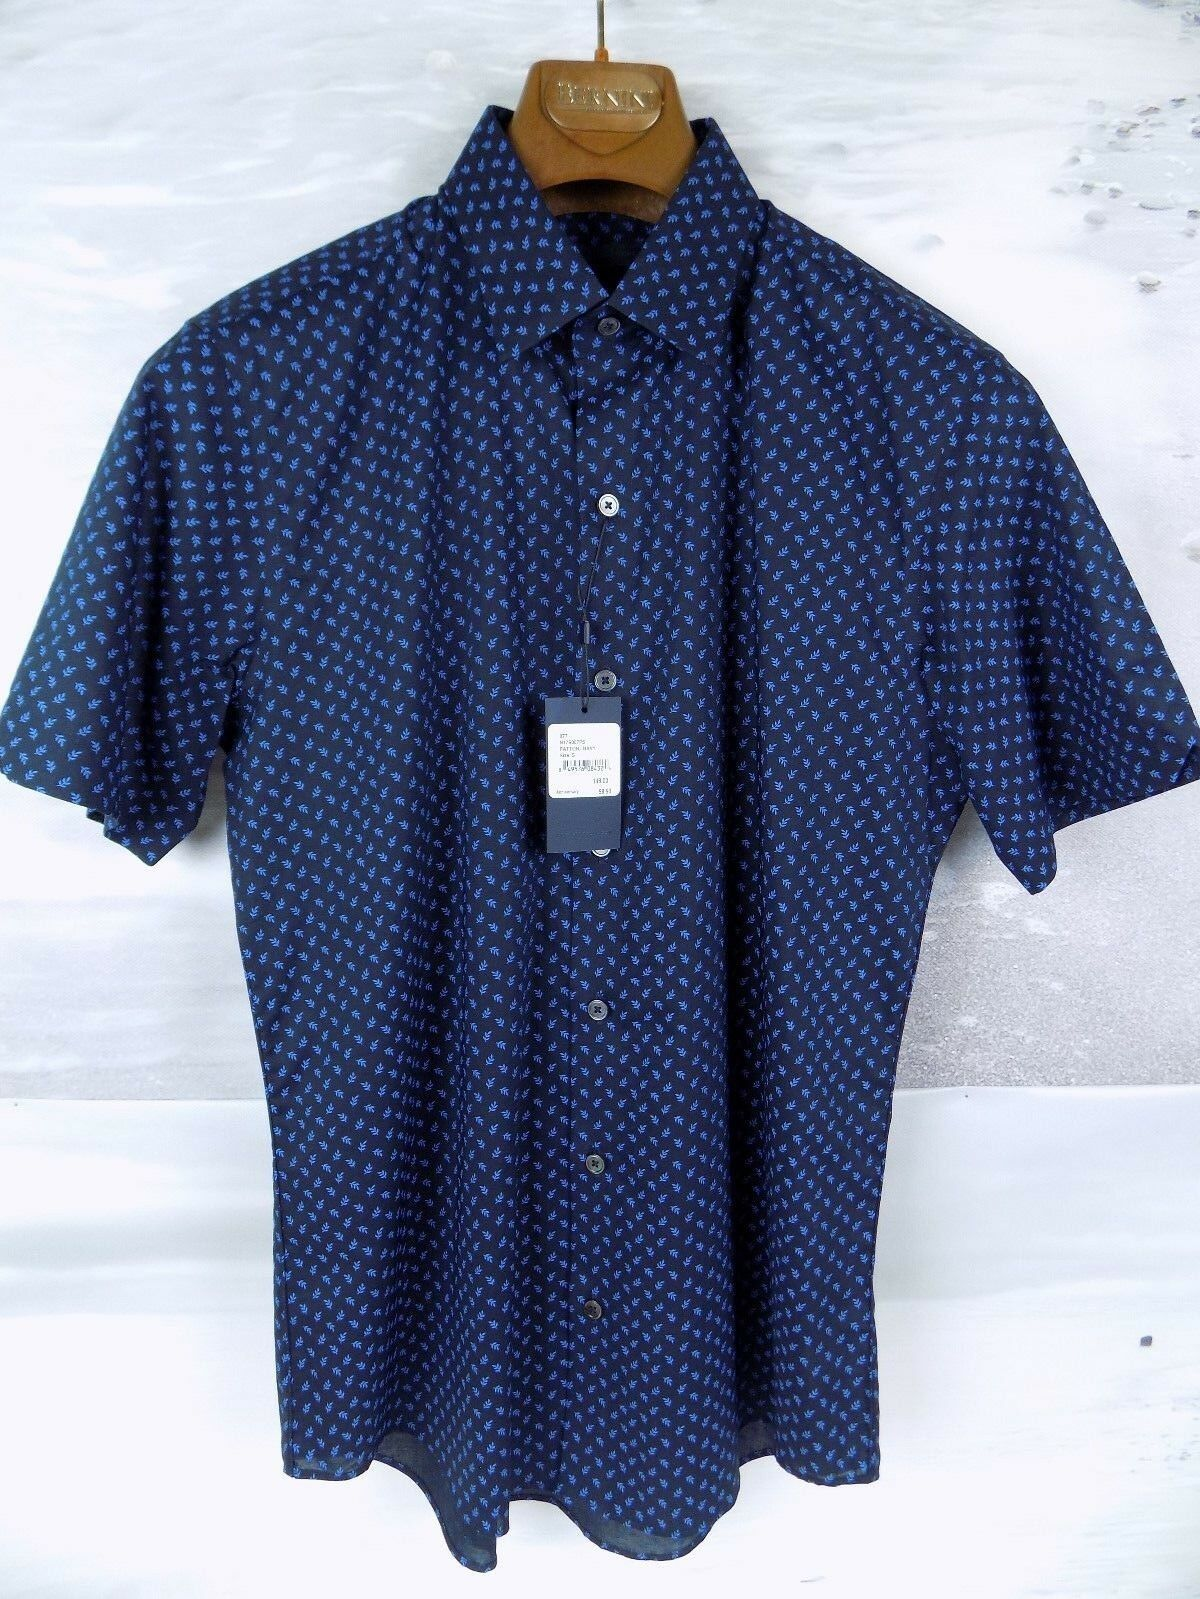 NWT Zachary Prell Short Sleeve Patton Navy Shirt Size-Small